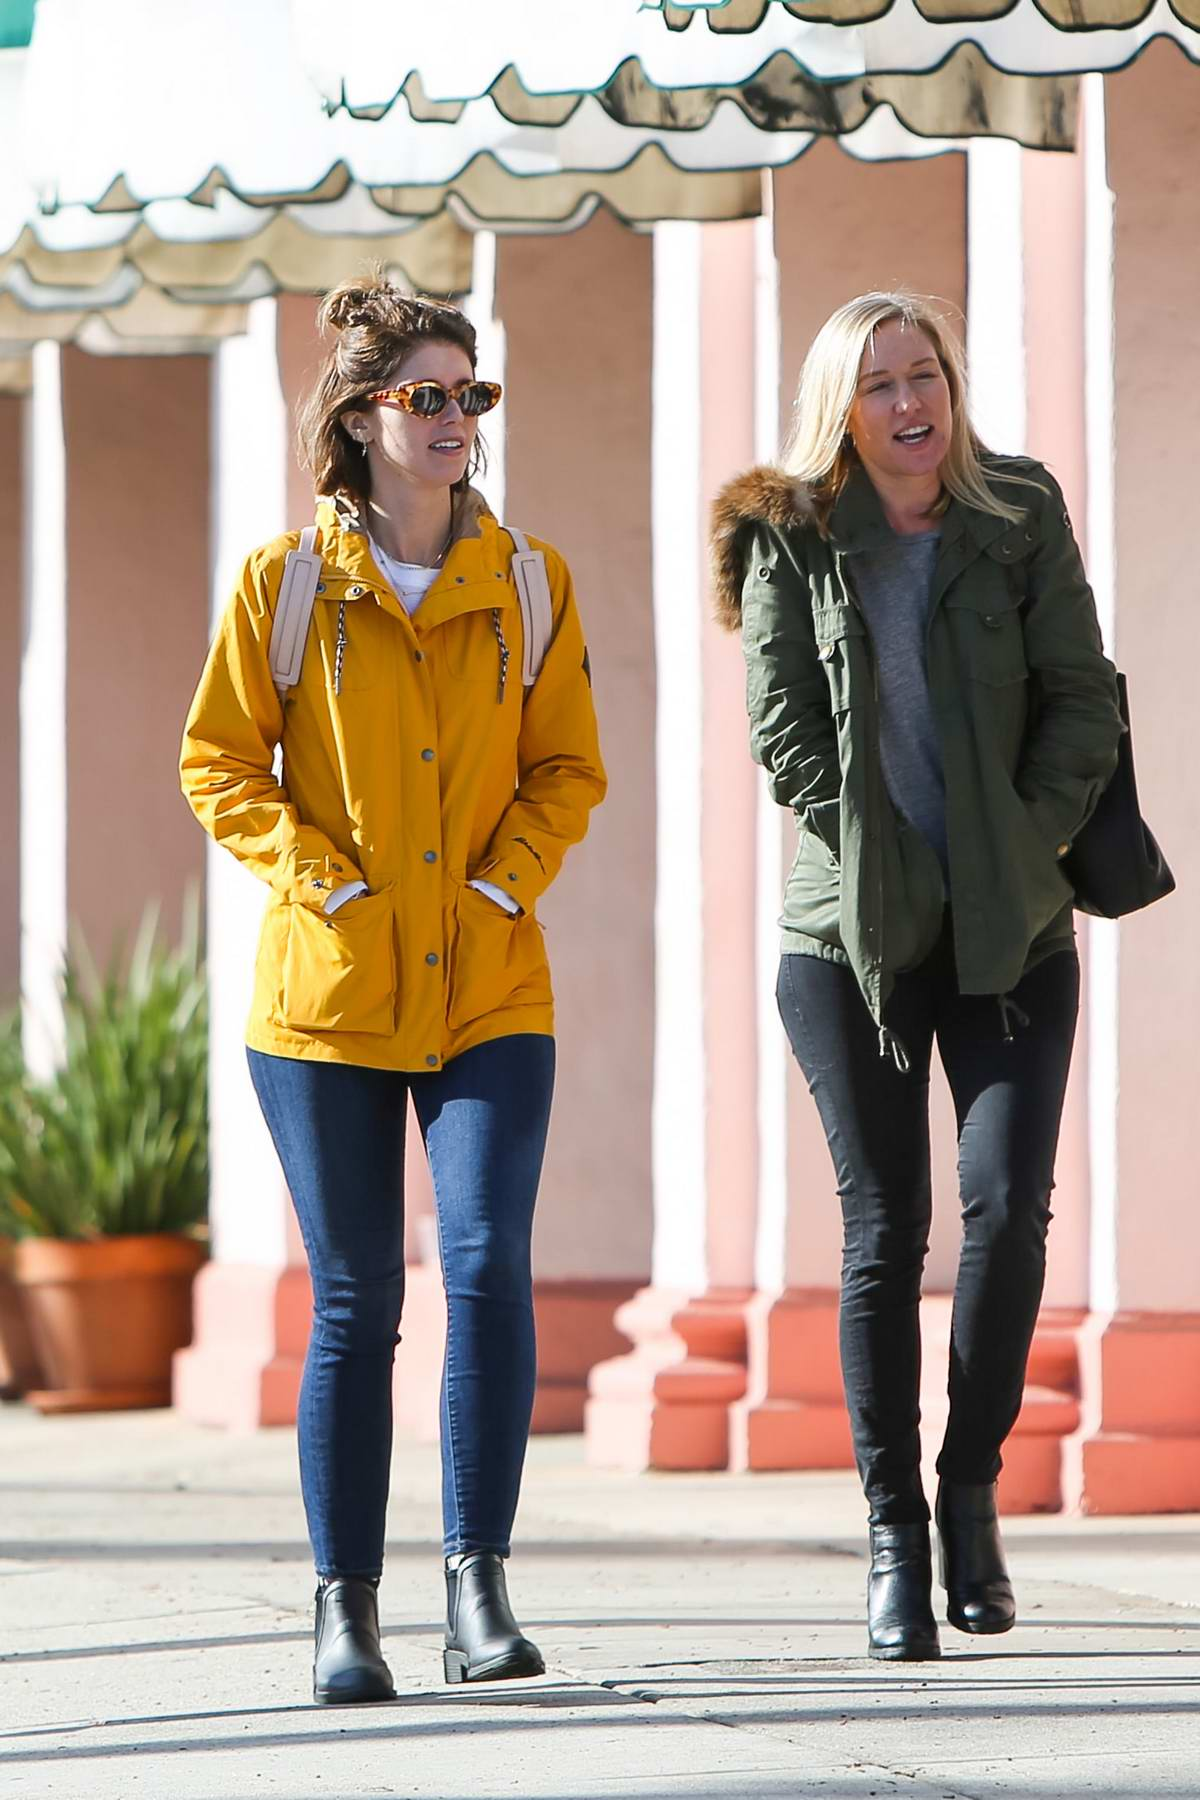 Katherine Schwarzenegger stands out in a bright yellow jacket as she enjoys a stroll with a friend in Los Angeles